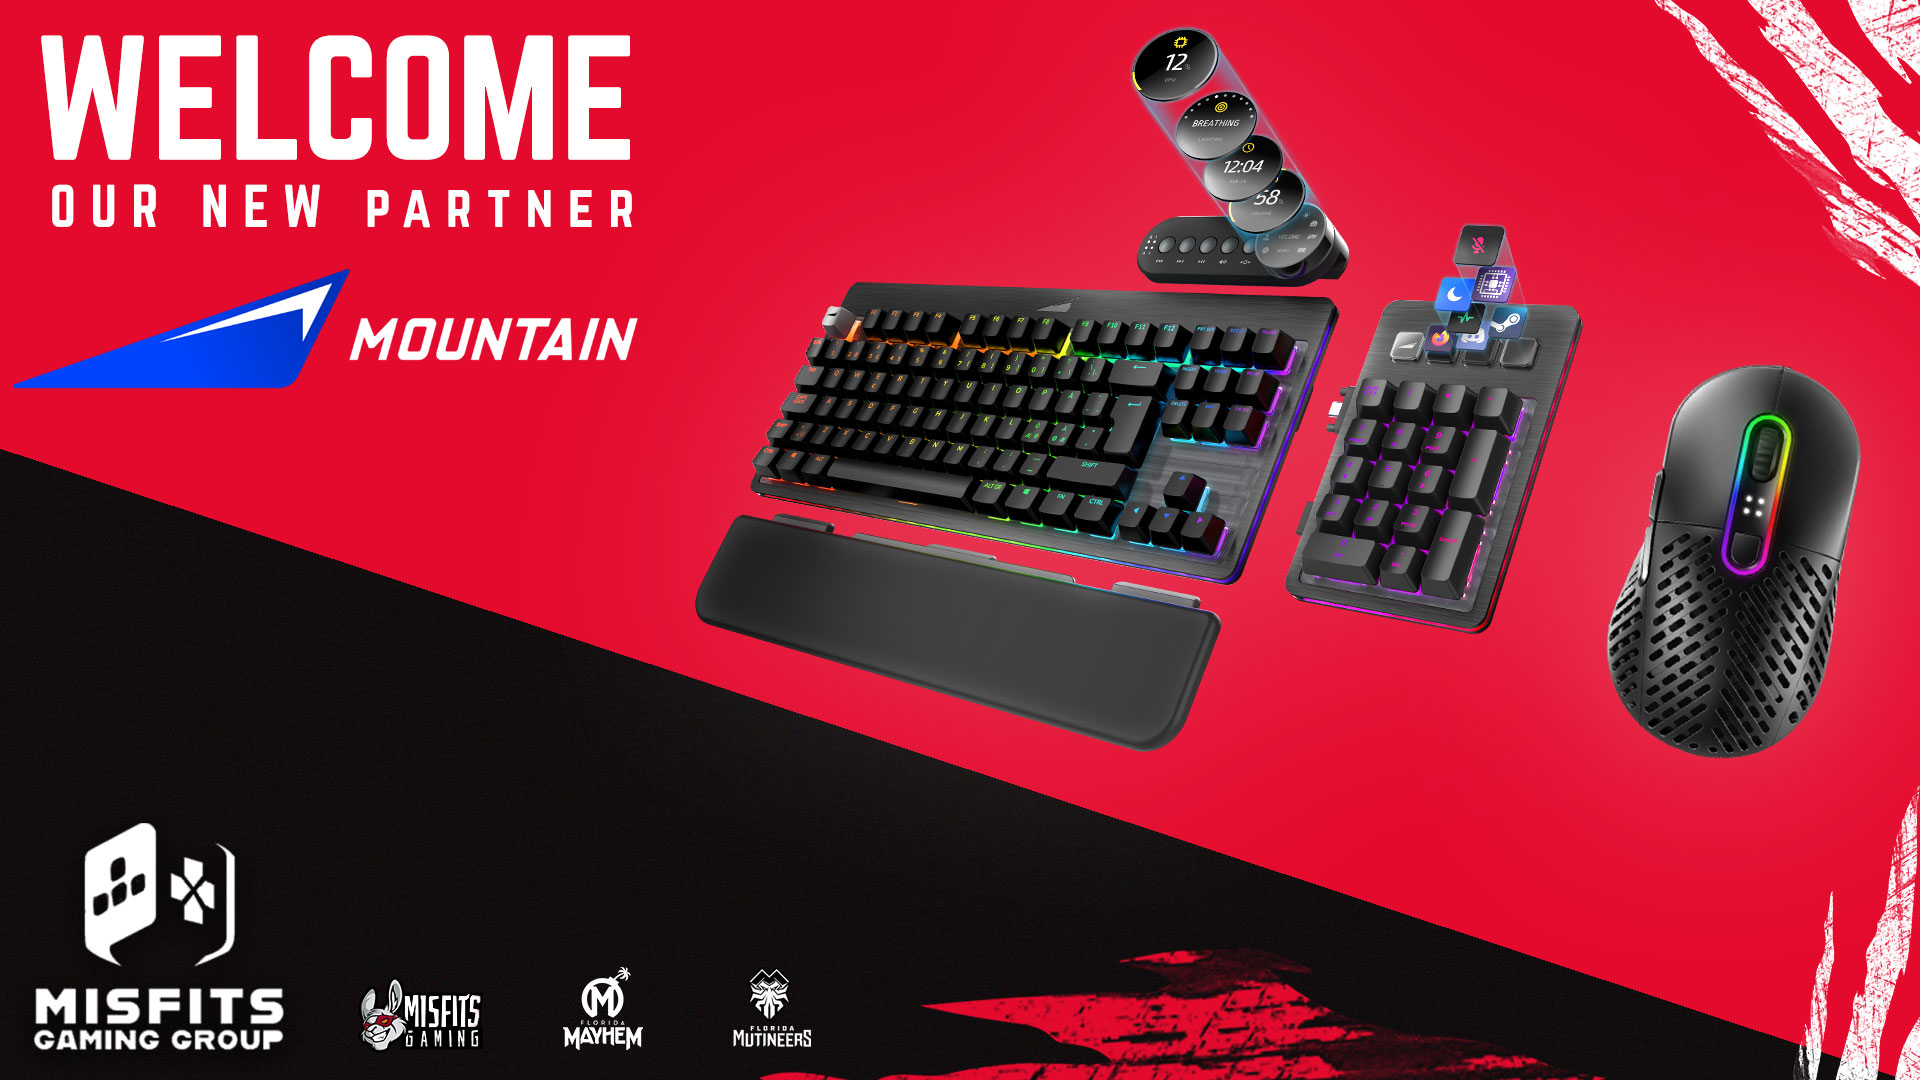 Peripherals company MOUNTAIN signs exclusive deal with Misfits Gaming Group